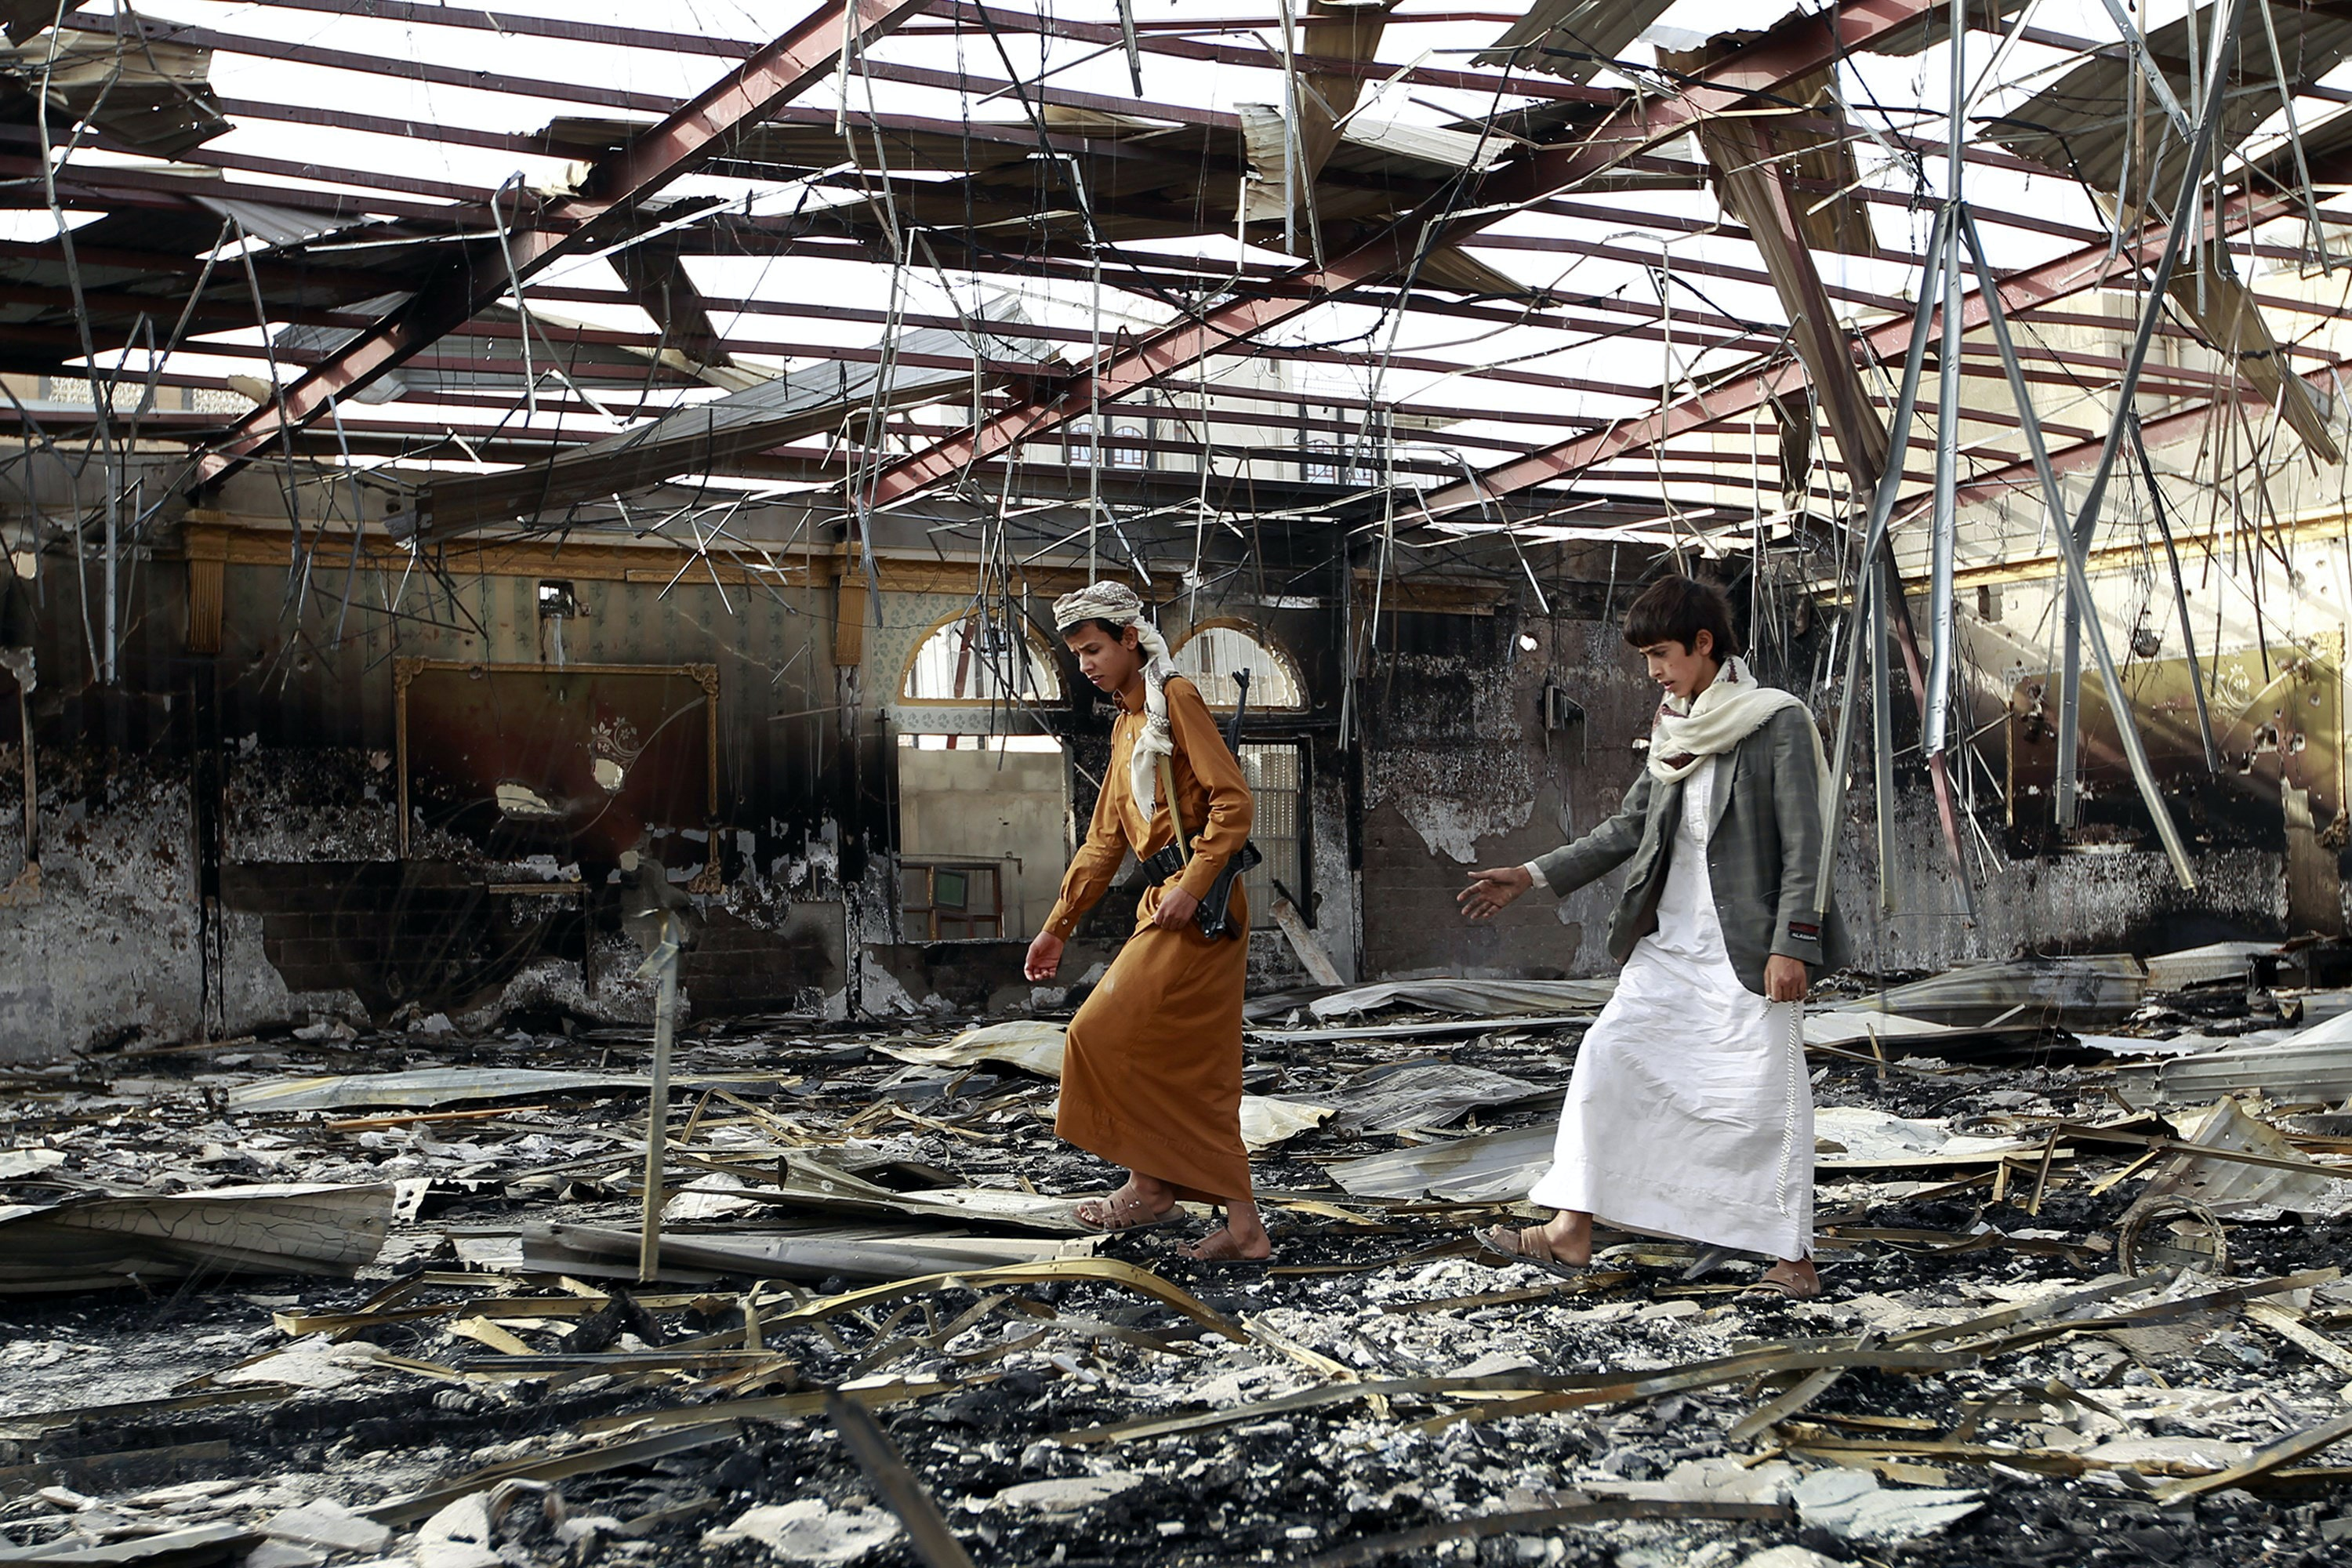 "Armed Yemenis walk on the debris at a wedding hall which was reportedly hit by a Saudi-led coalition air strike in the capital Sanaa, on July 10, 2015, a few hours before a humanitarian pause was to take effect. The humanitarian pause in the war in Yemen will be ""useless"" because rebels and their allies have shown no readiness to abide by it, a Saudi official said. AFP PHOTO / MOHAMMED HUWAIS        (Photo credit should read MOHAMMED HUWAIS/AFP/Getty Images)"